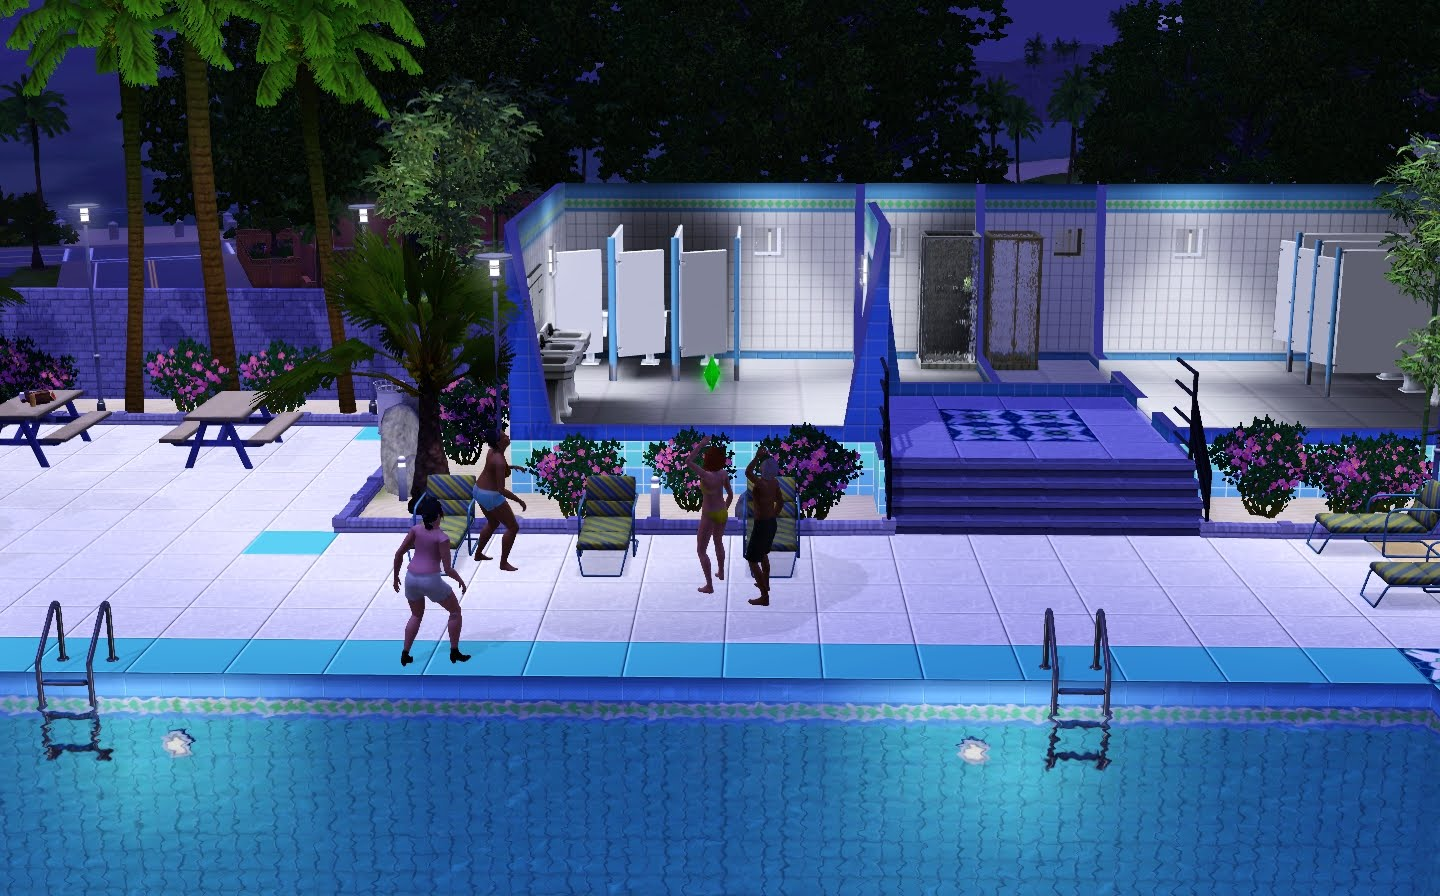 Sims 3 Pool Rund Drehen The Opinion Bunny Sims 3 Fun